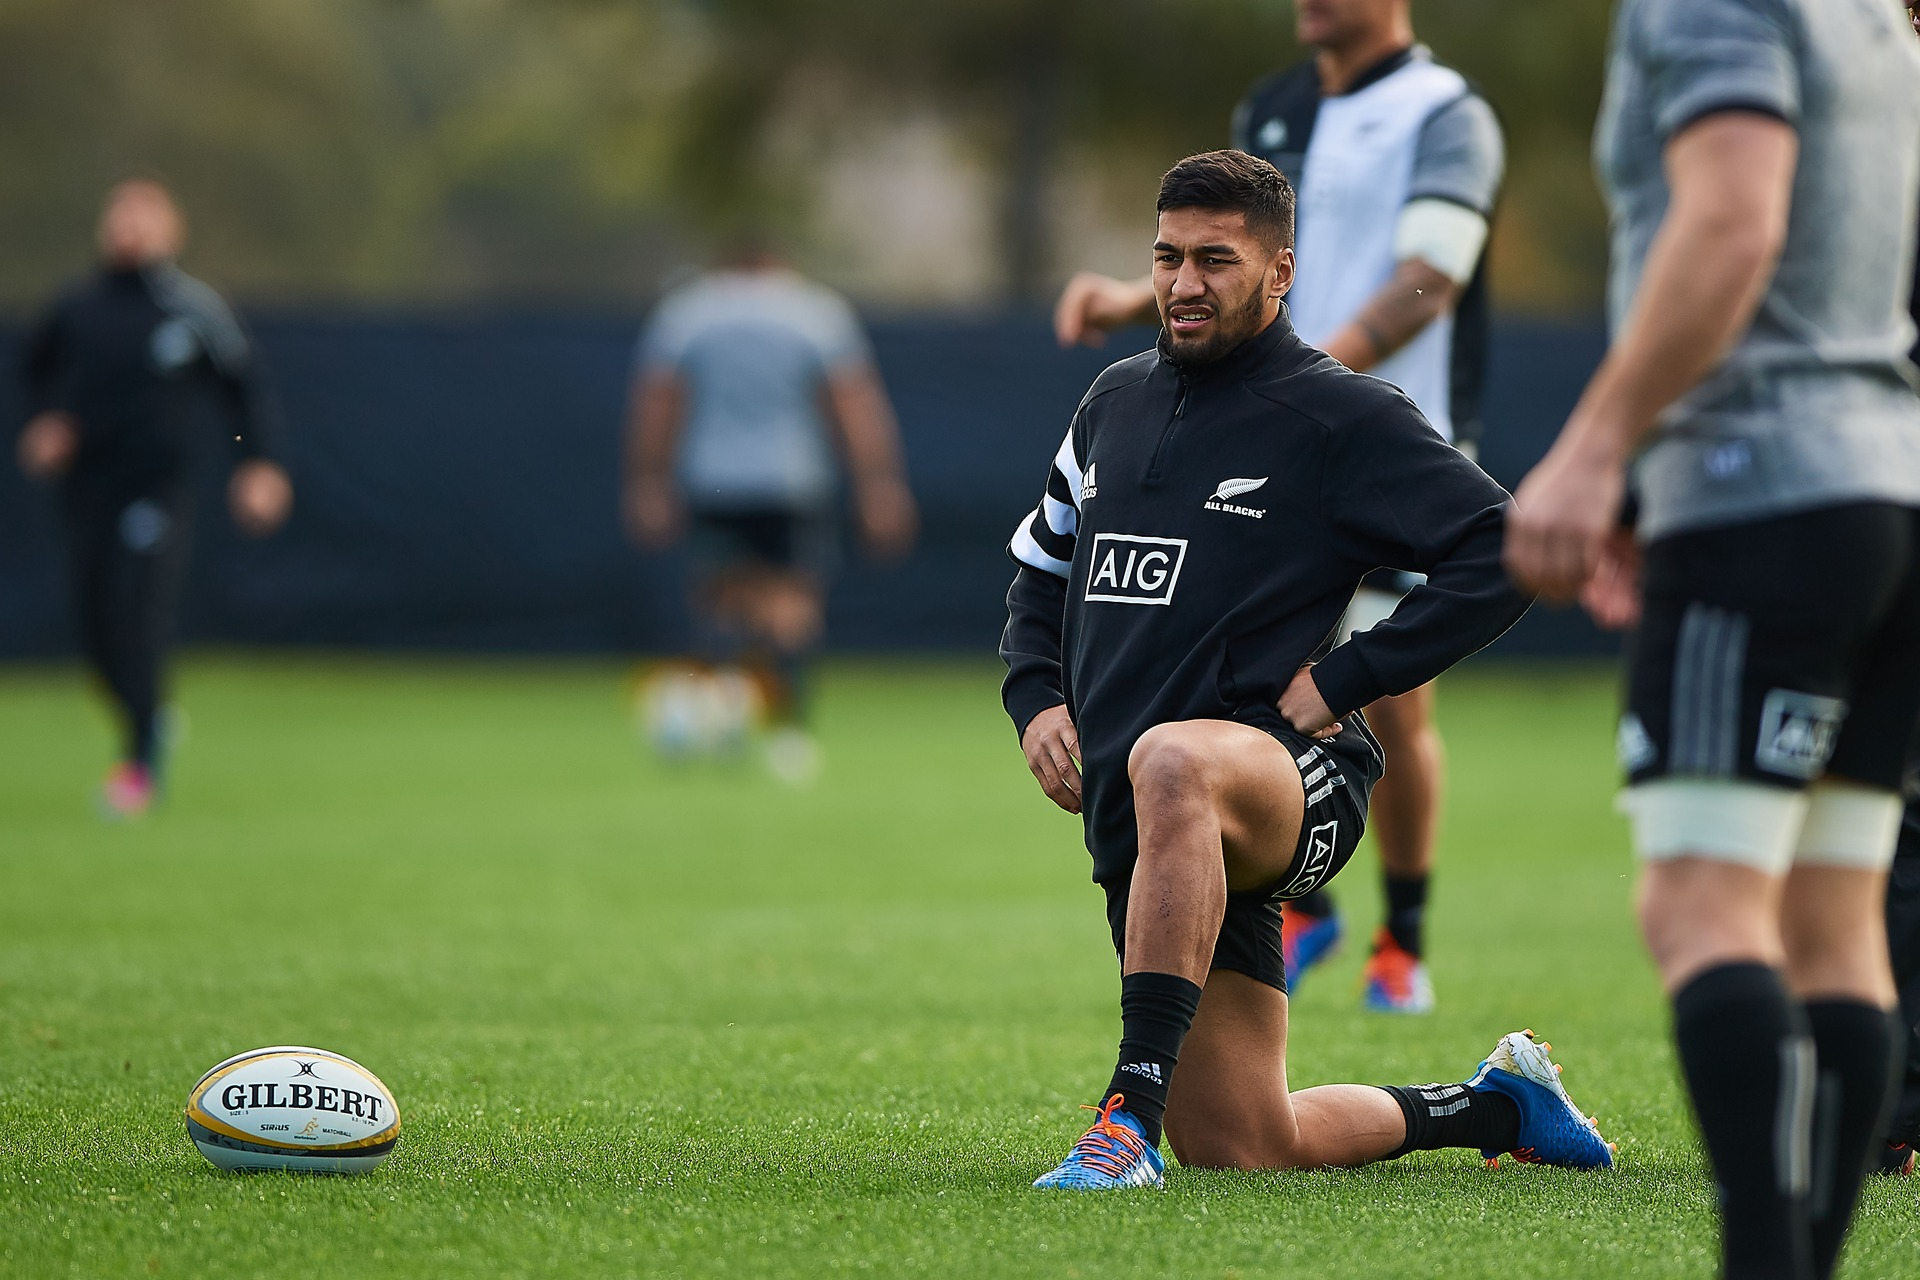 2019 Rugby World Cup: Rieko Ioane one of nine All Blacks released to play Mitre 10 Cup